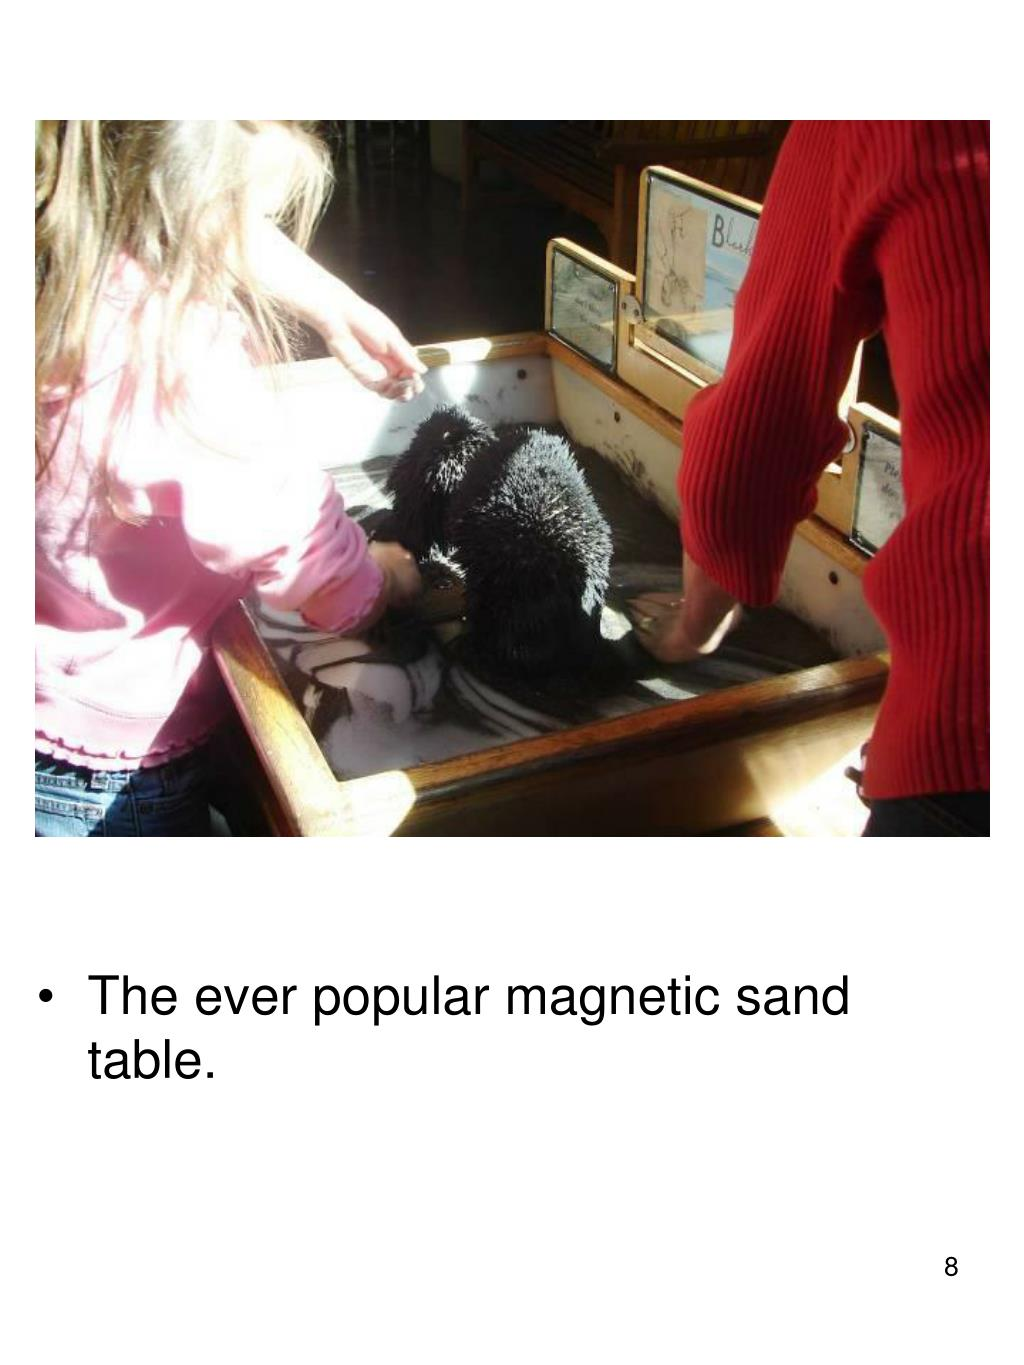 The ever popular magnetic sand table.